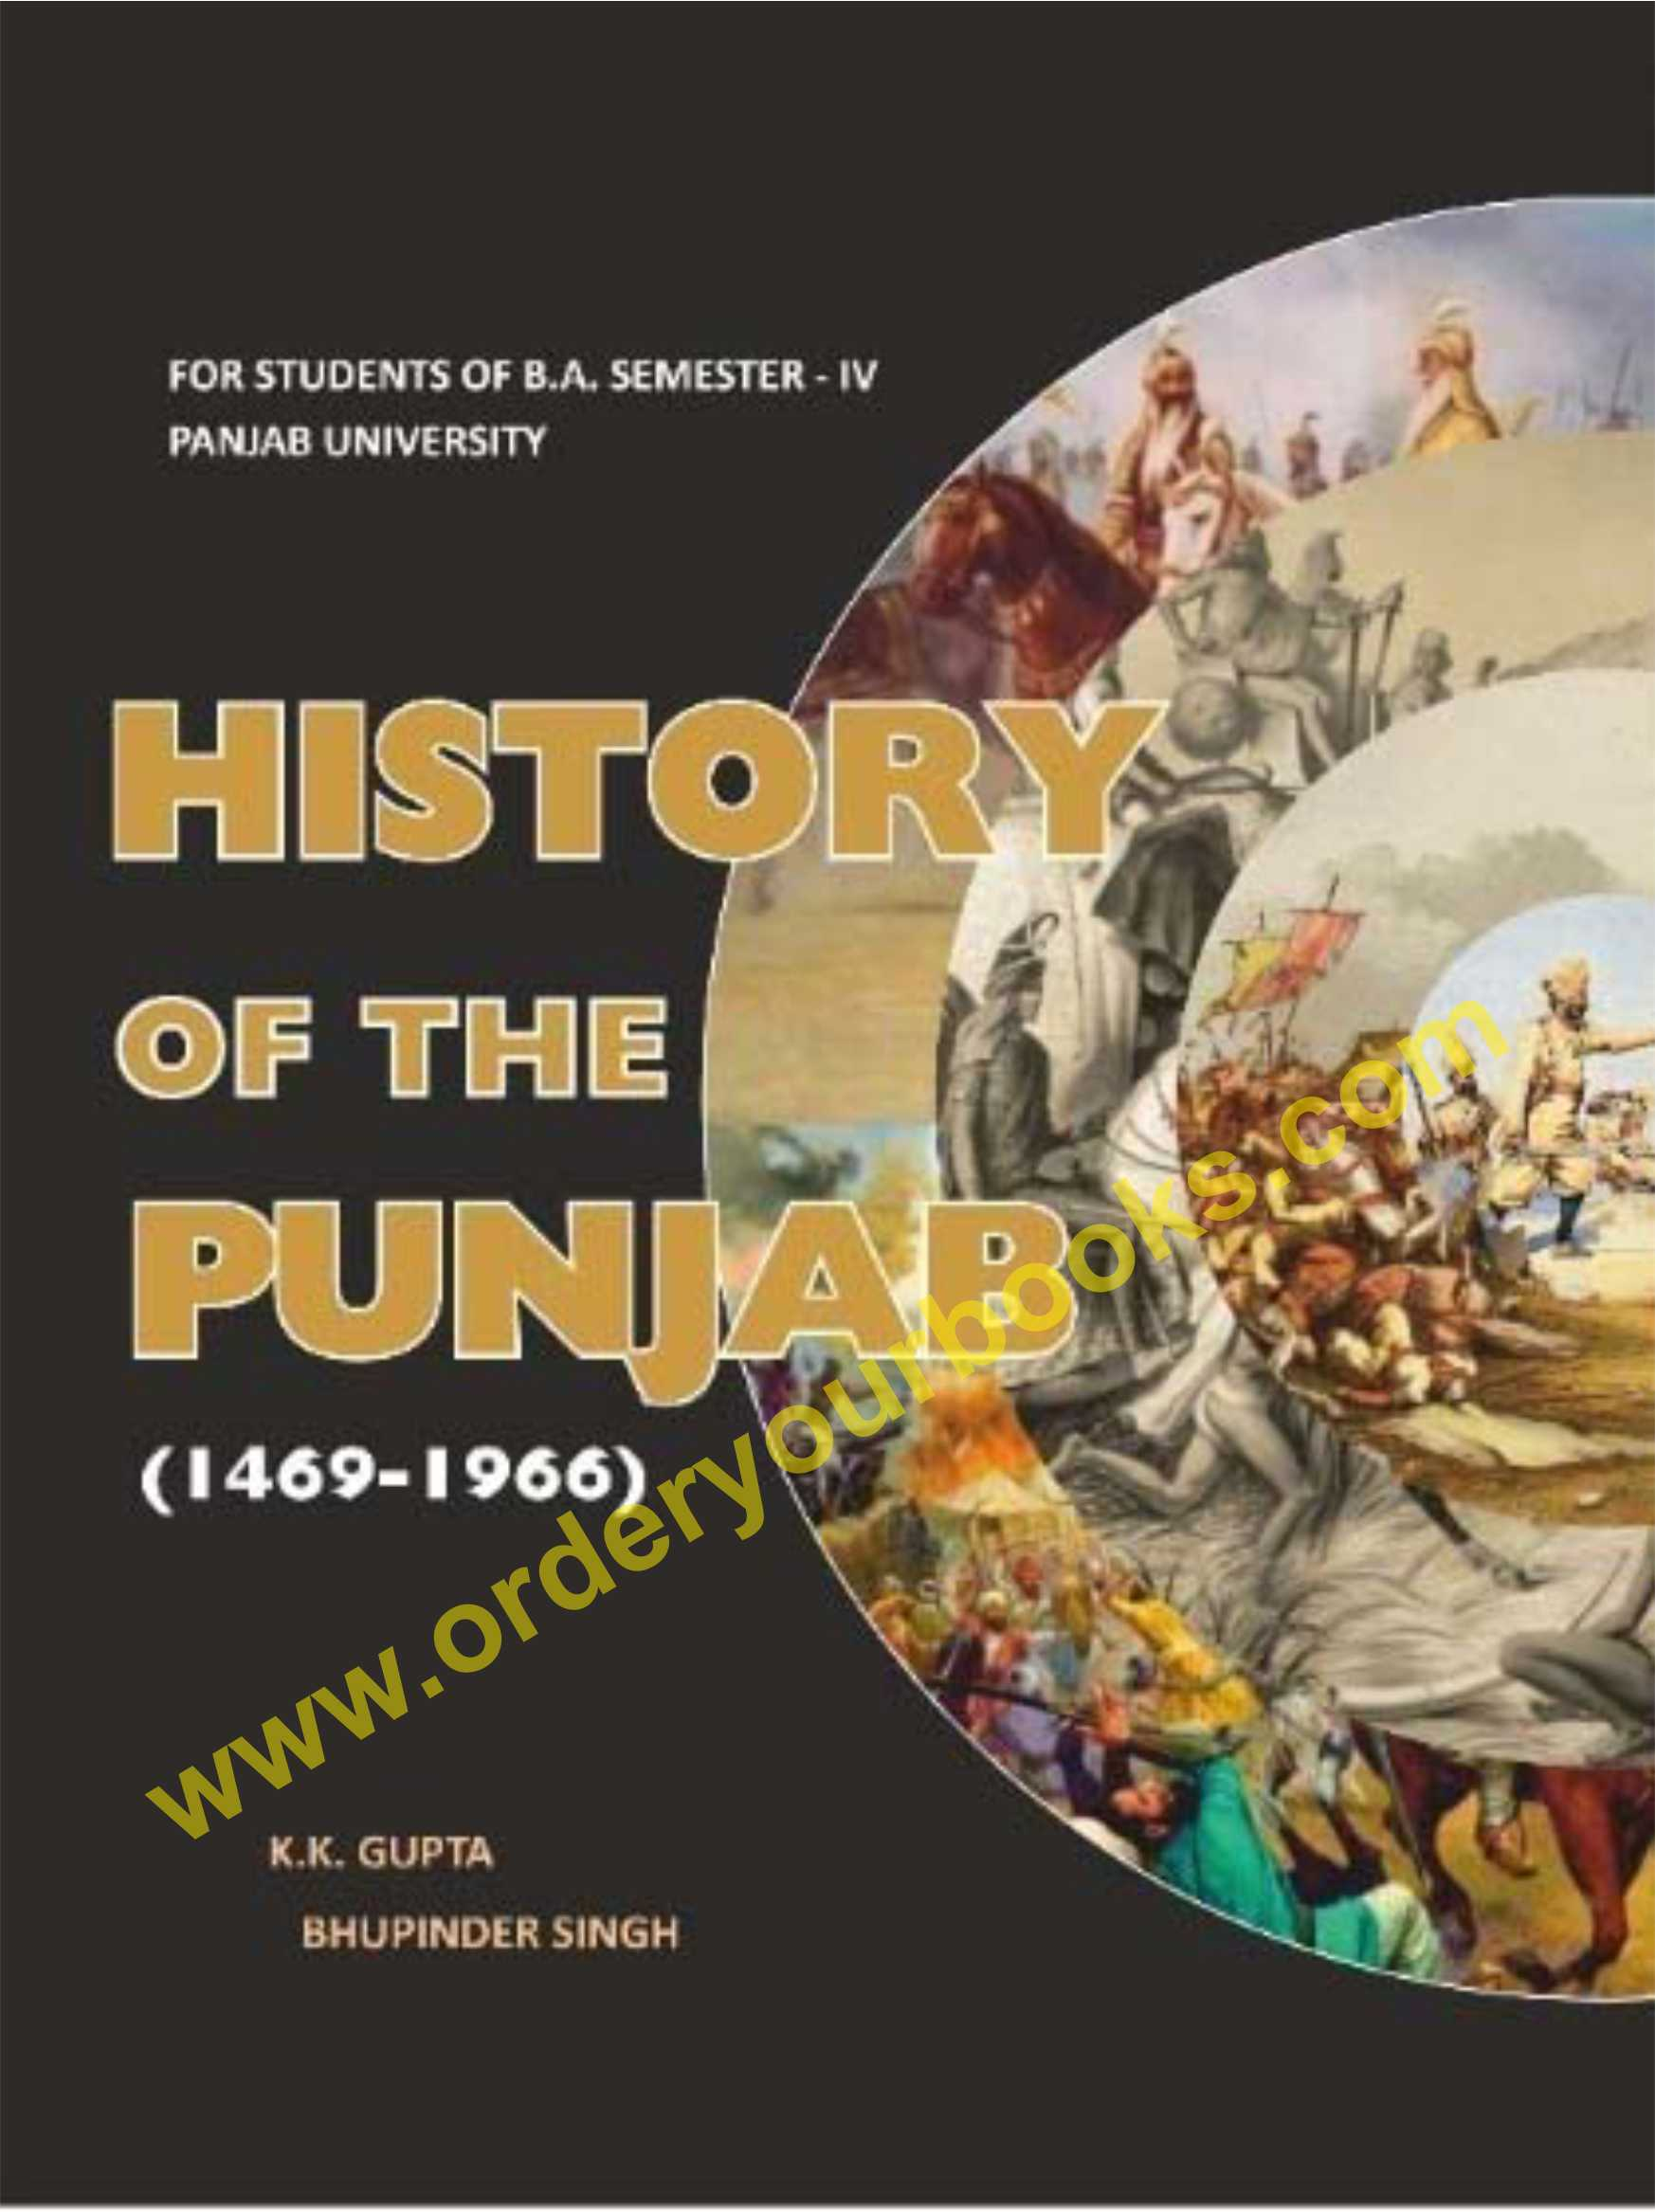 History of the Punjab 1469-1966 for Semester-IV B.A. (P.U.) by Dr. K.K. Gupta and Bhupinder Singh (Mohindra Publishng house) Edition 2021 for Panjab University